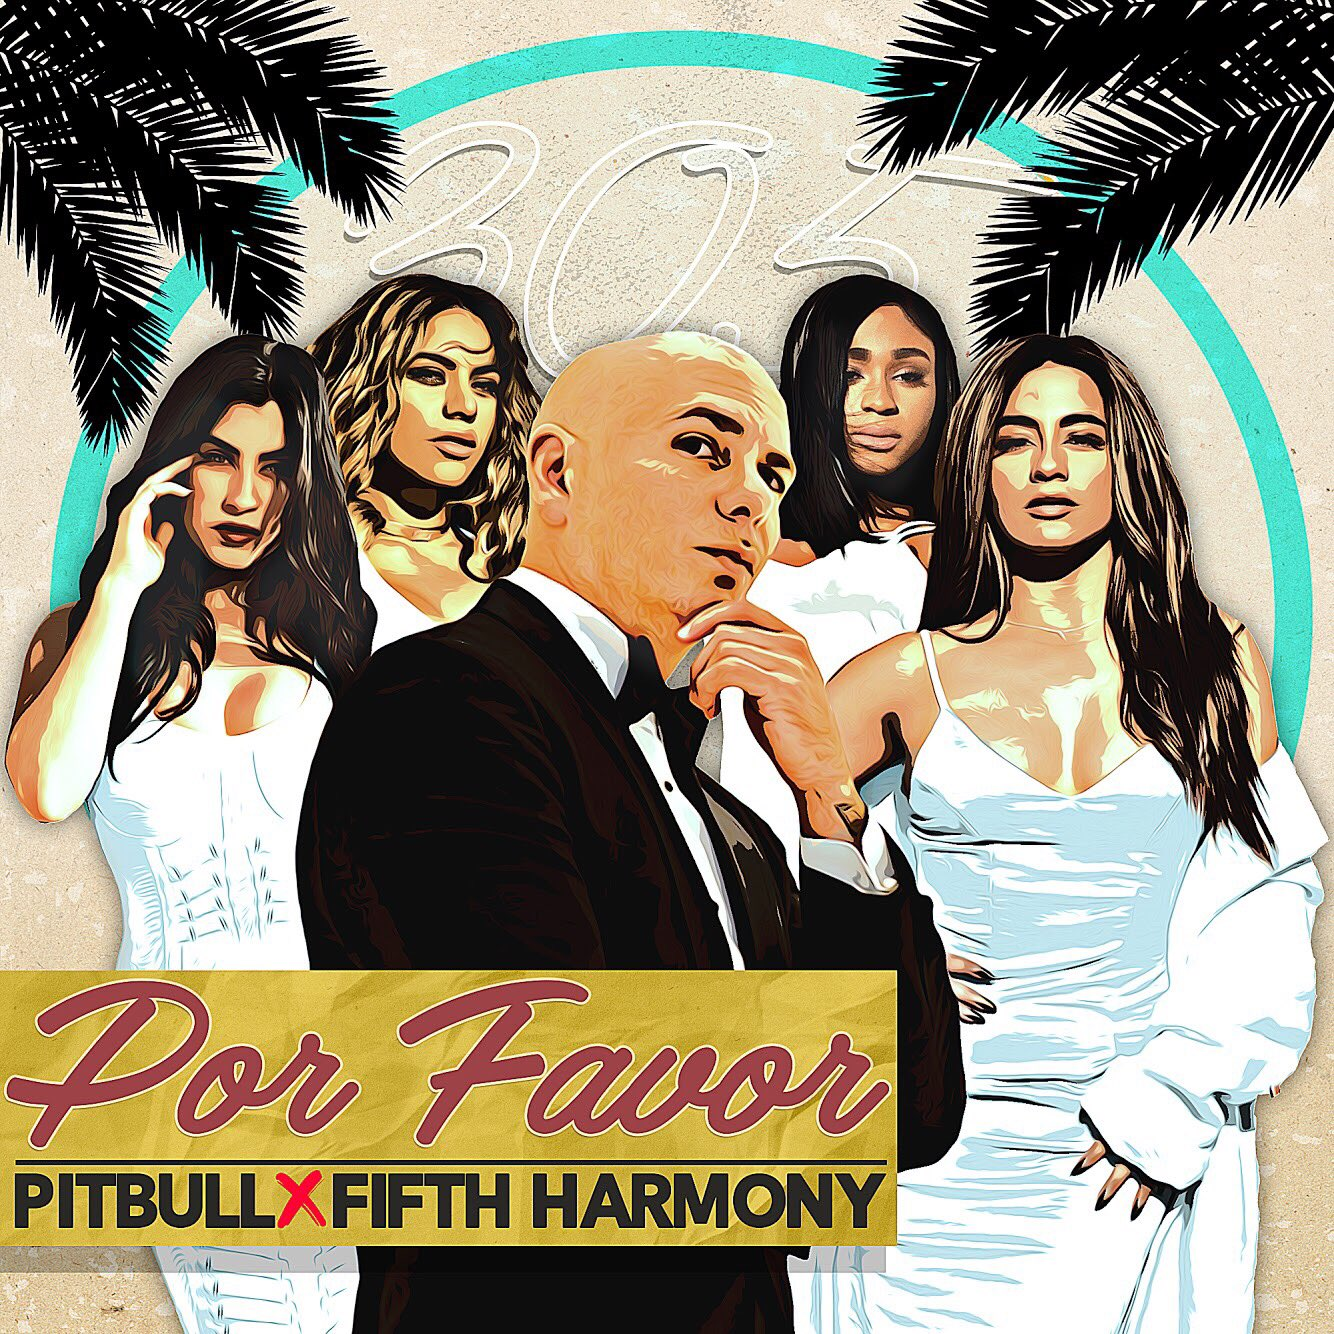 Our new single #PorFavor featuring @FifthHarmony is on its way! https://t.co/8wHGzD9oGZ